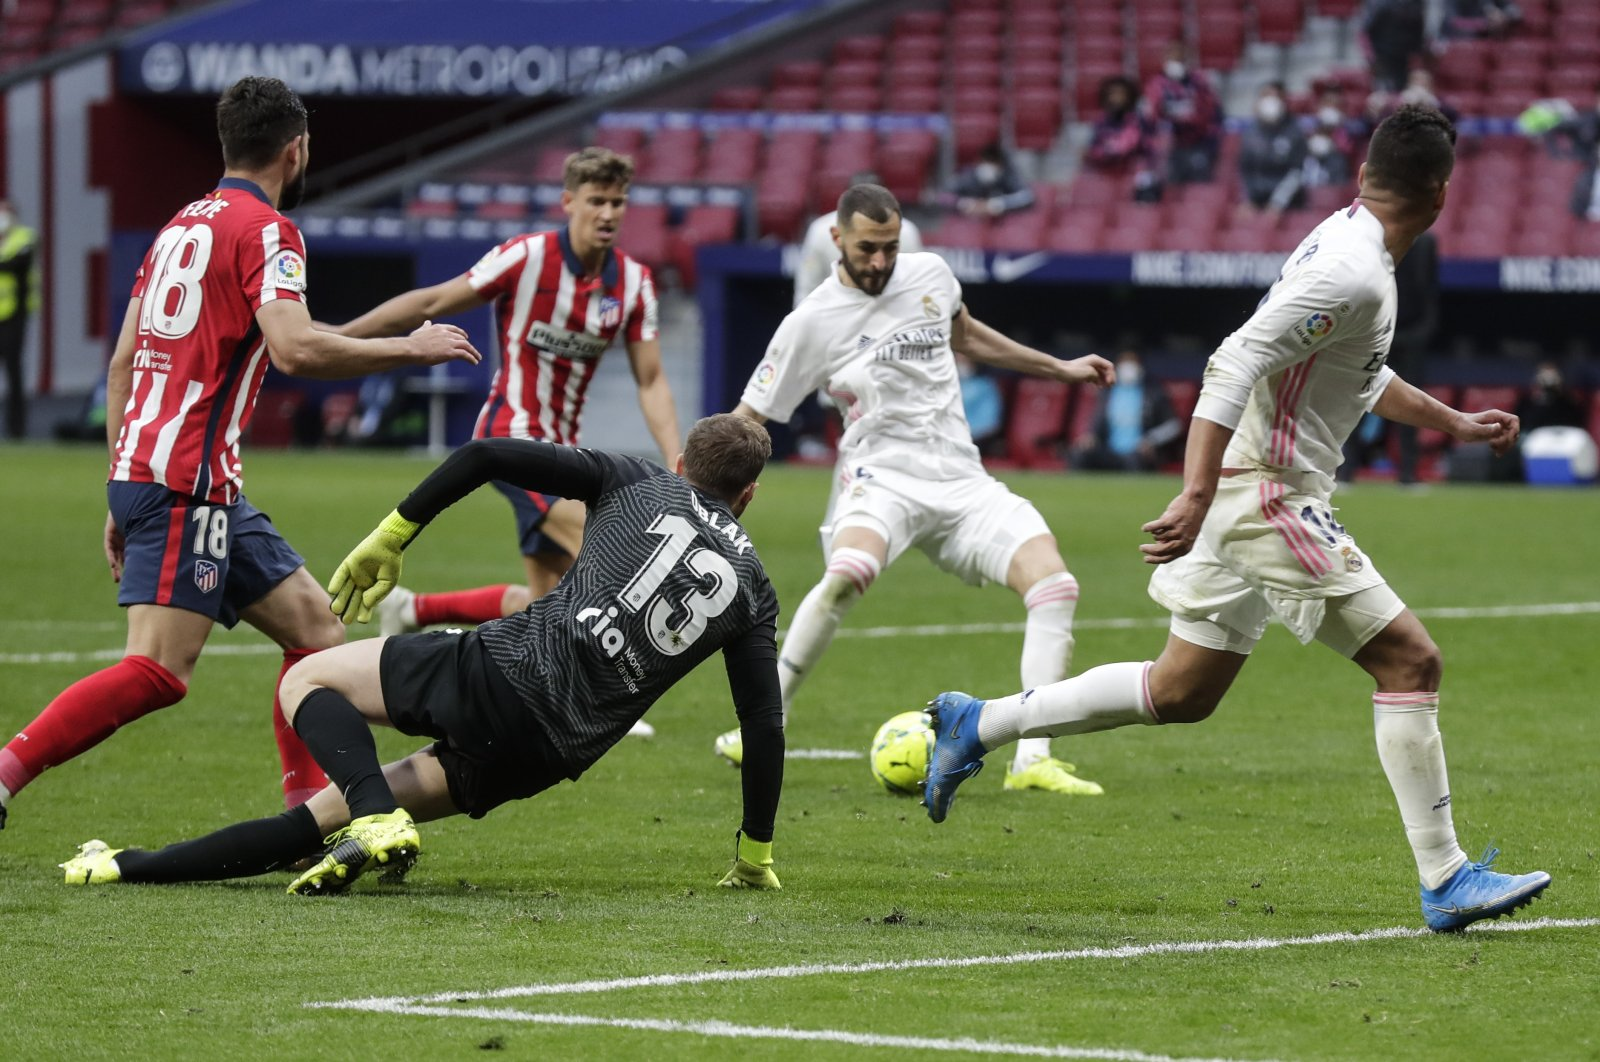 Real Madrid's Karim Benzema scores his side's opening goal during the Spanish La Liga soccer match between Atletico Madrid and Real Madrid at the Wanda Metropolitano stadium in Madrid, Spain, Sunday, March 7, 2021. (AP Photo)